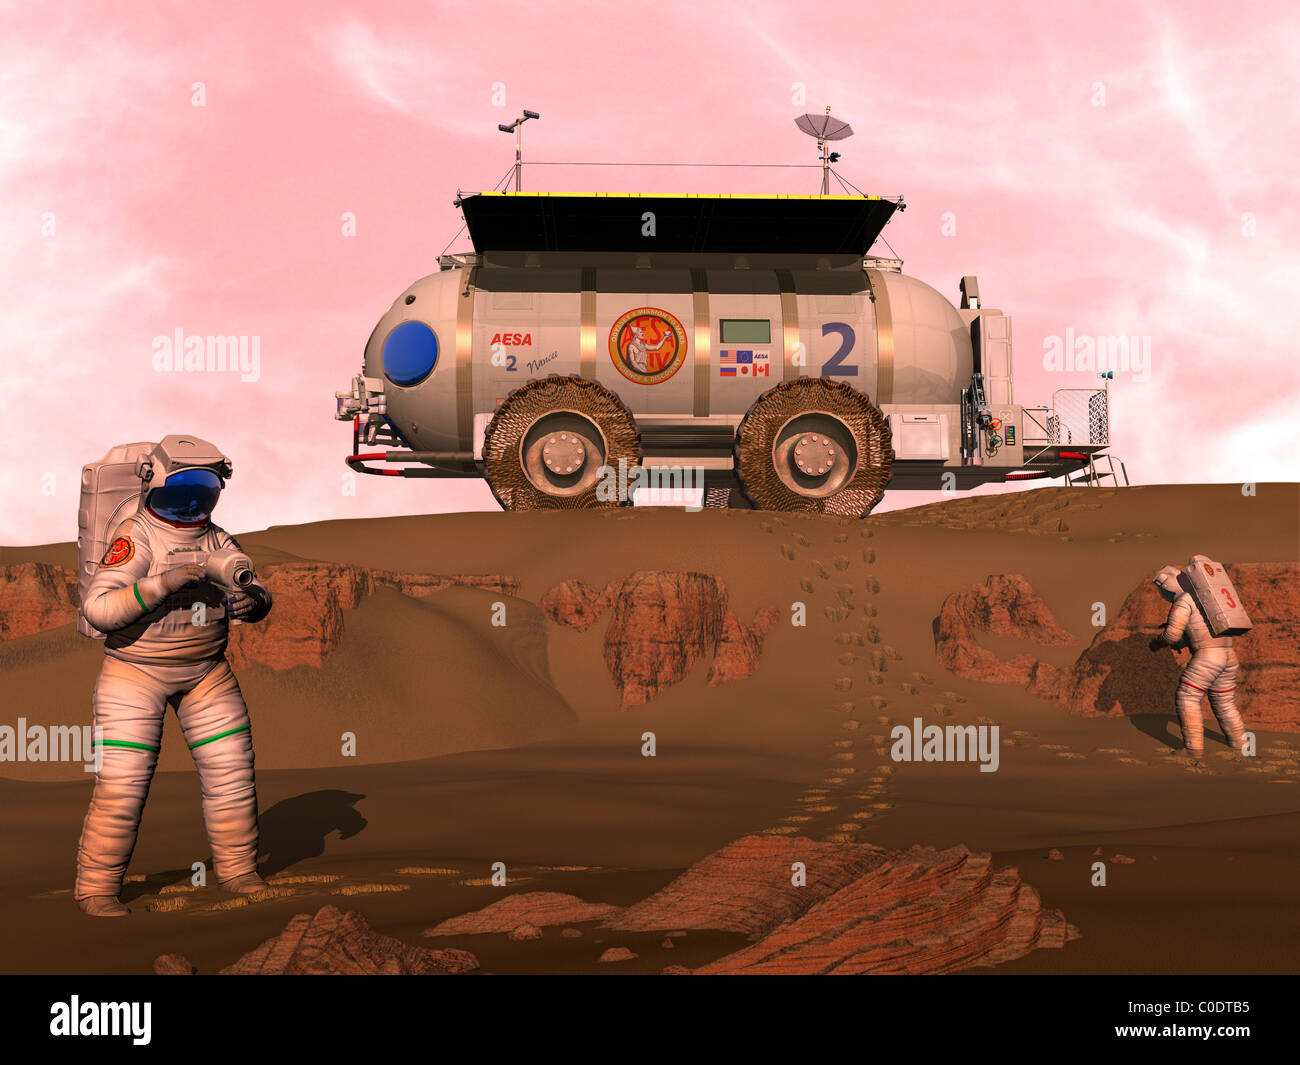 Illustration of astronauts examining an outcrop of sedimentary rock on a Martian dune field. Stock Photo